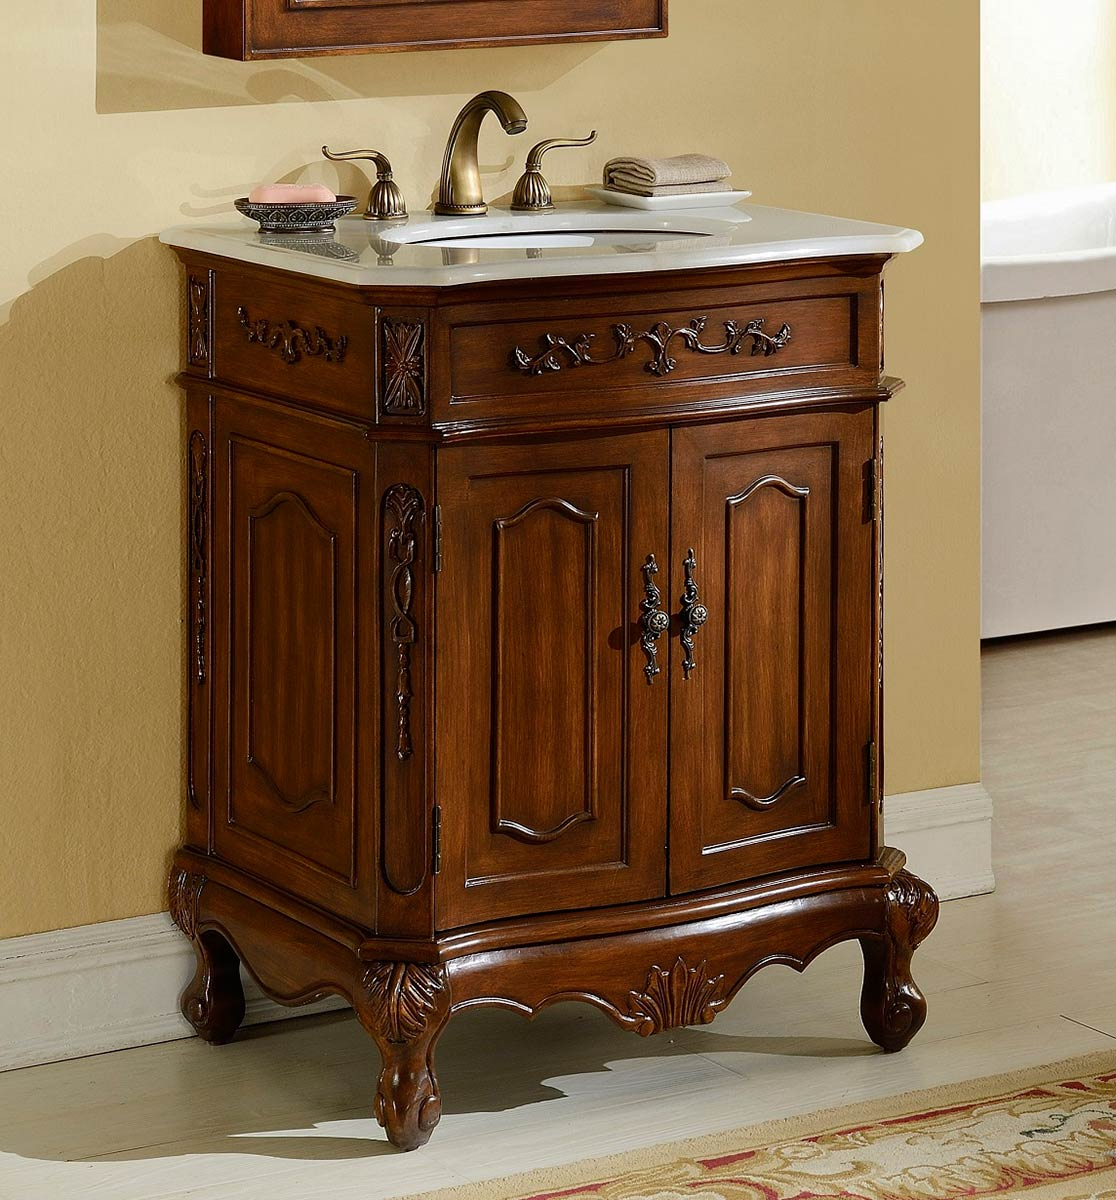 Chelsea Home Cambridge 27-inch Vanity - Teak